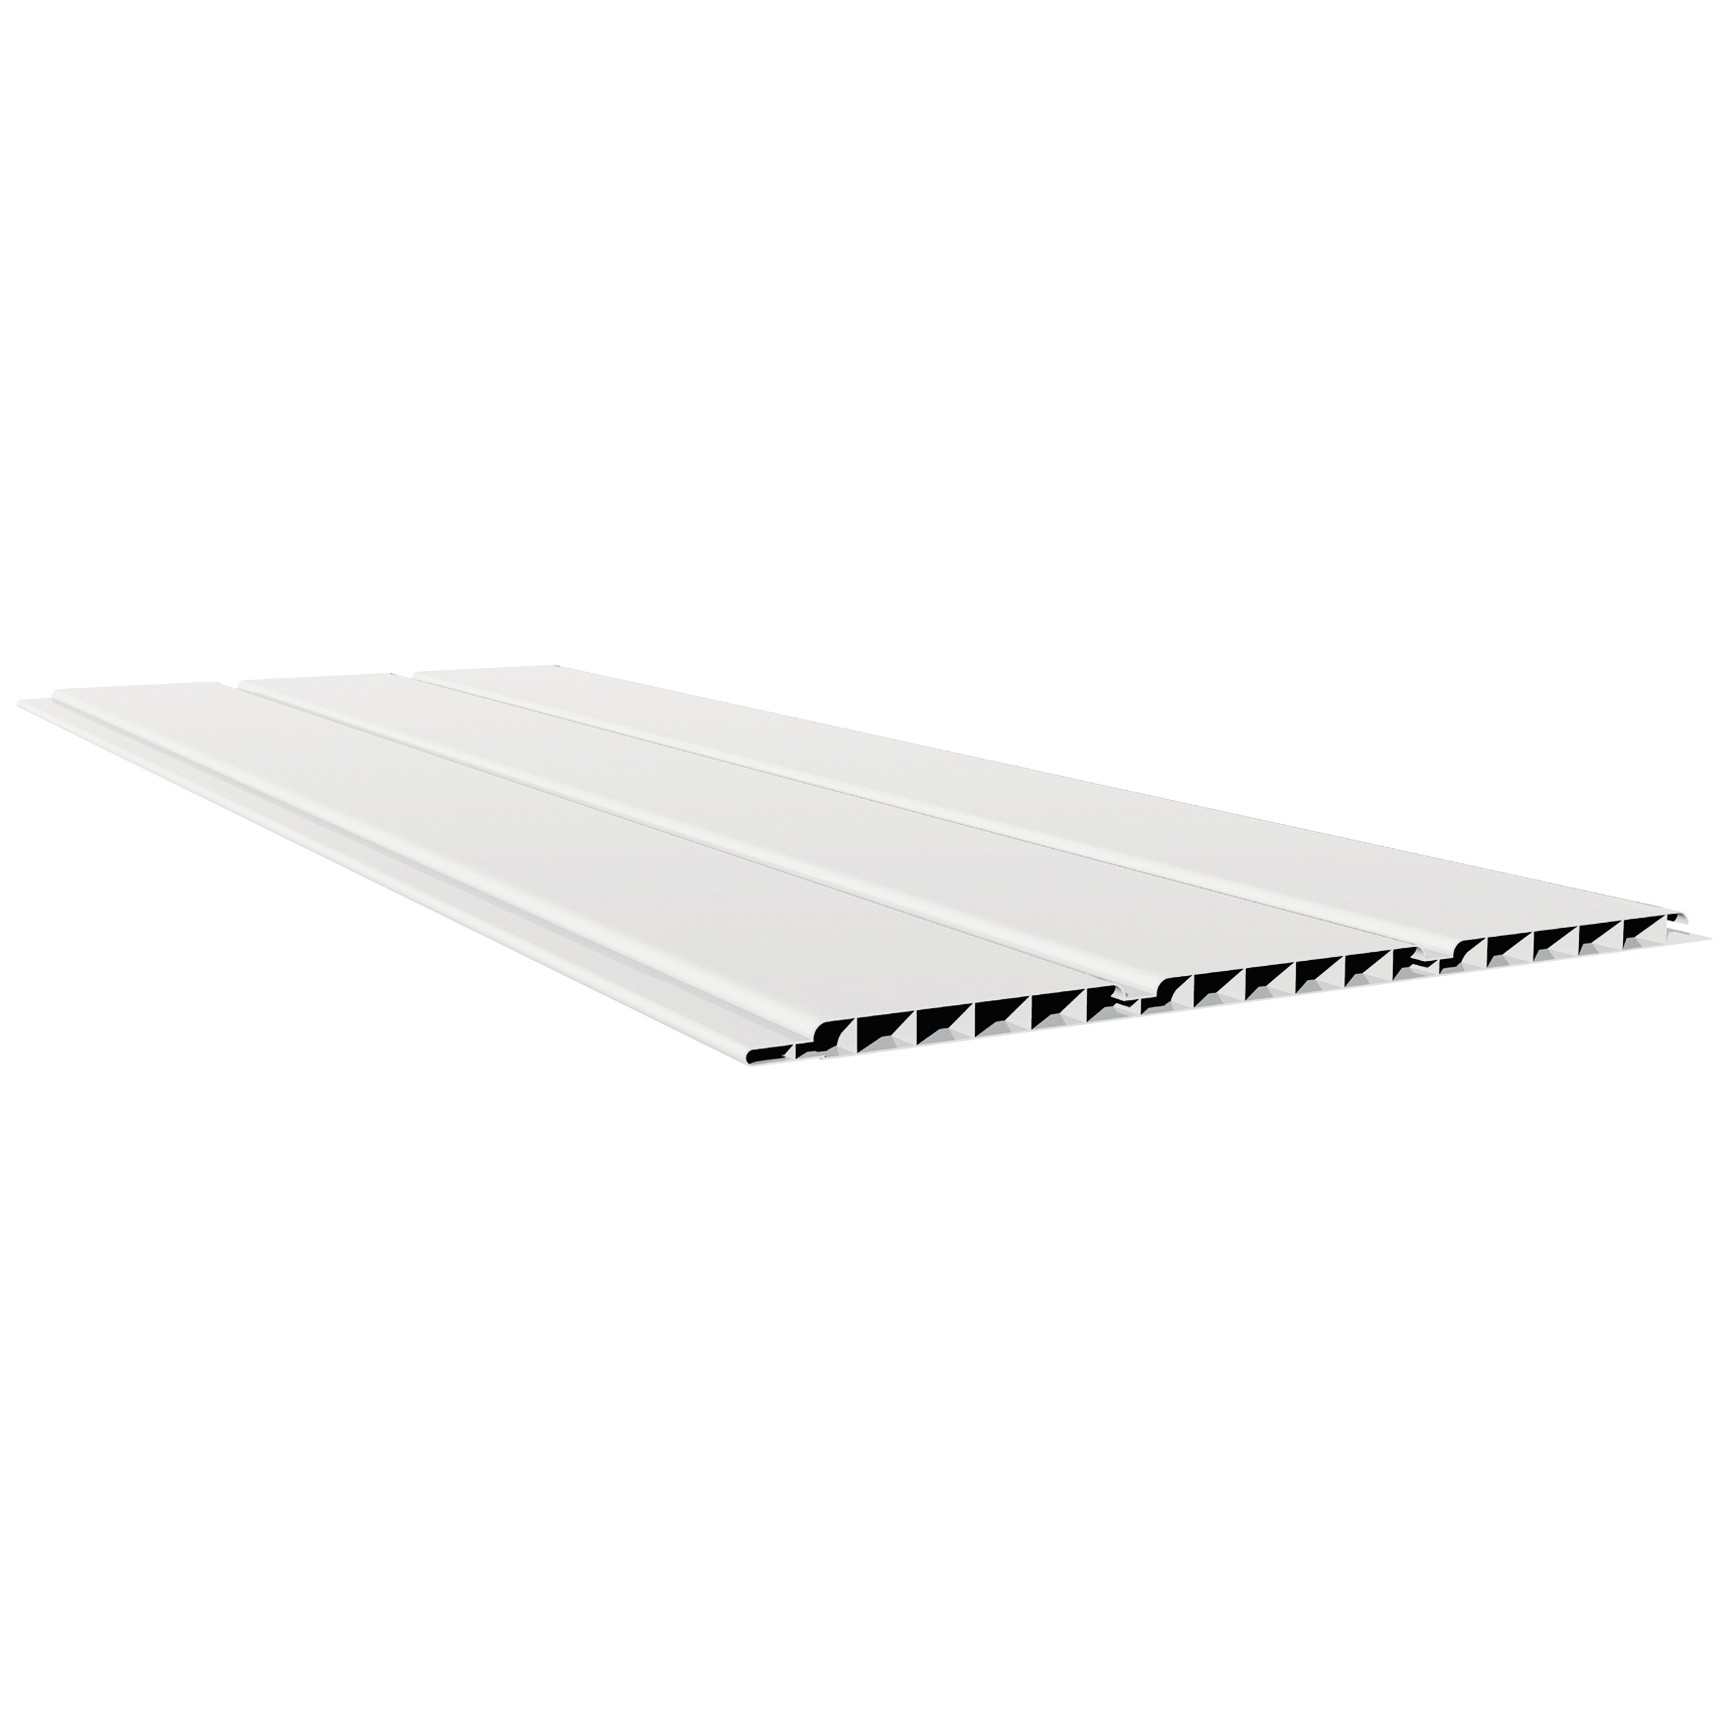 Freefoam 10mm Hollow Soffit Board - White, 300mm, 5 metre